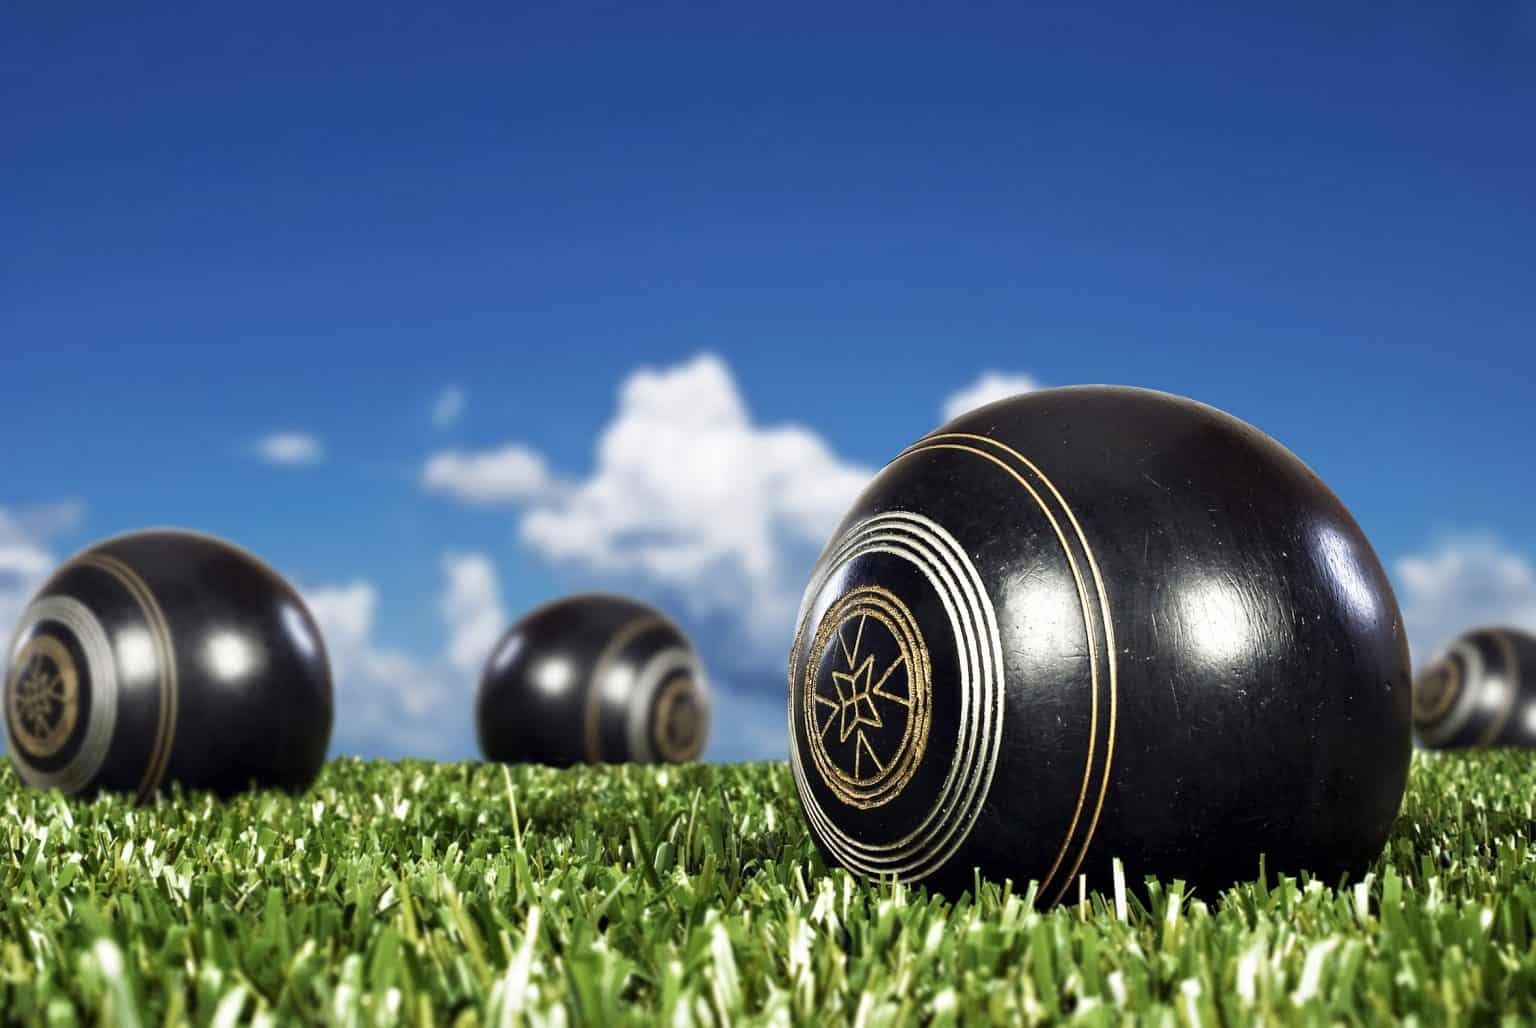 Attwood Marshall Lawyers sponsor men of league bowls day at coolangatta bowls club